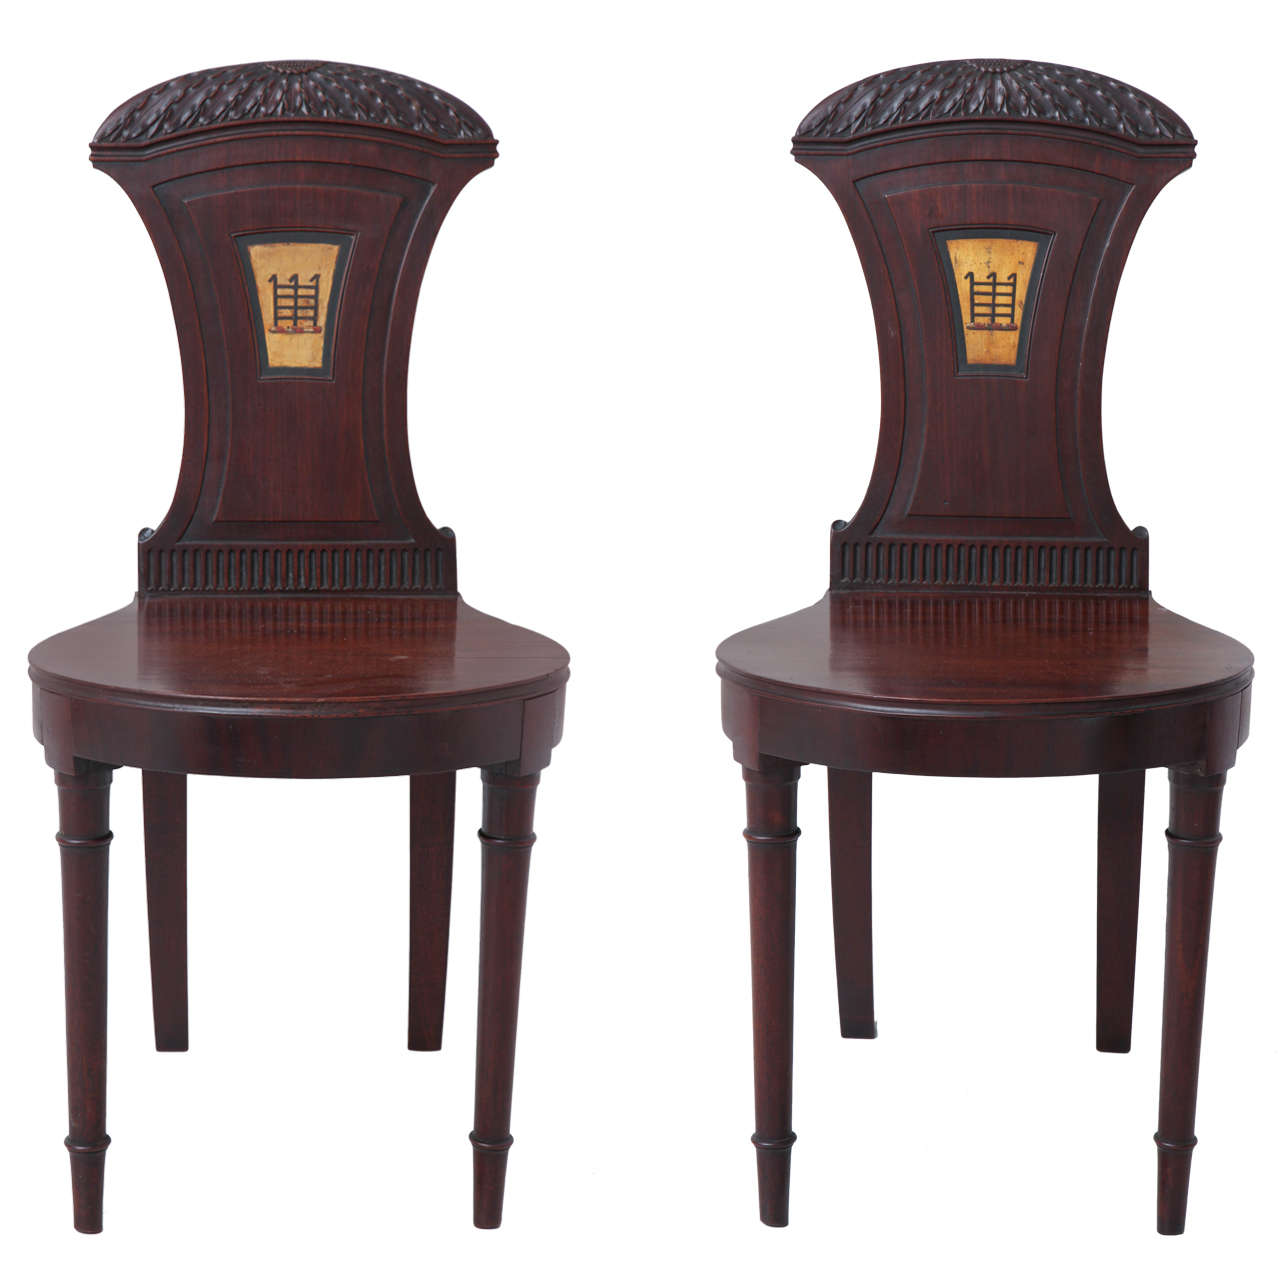 Pair of English Regency Mahogany Hall Chairs 1